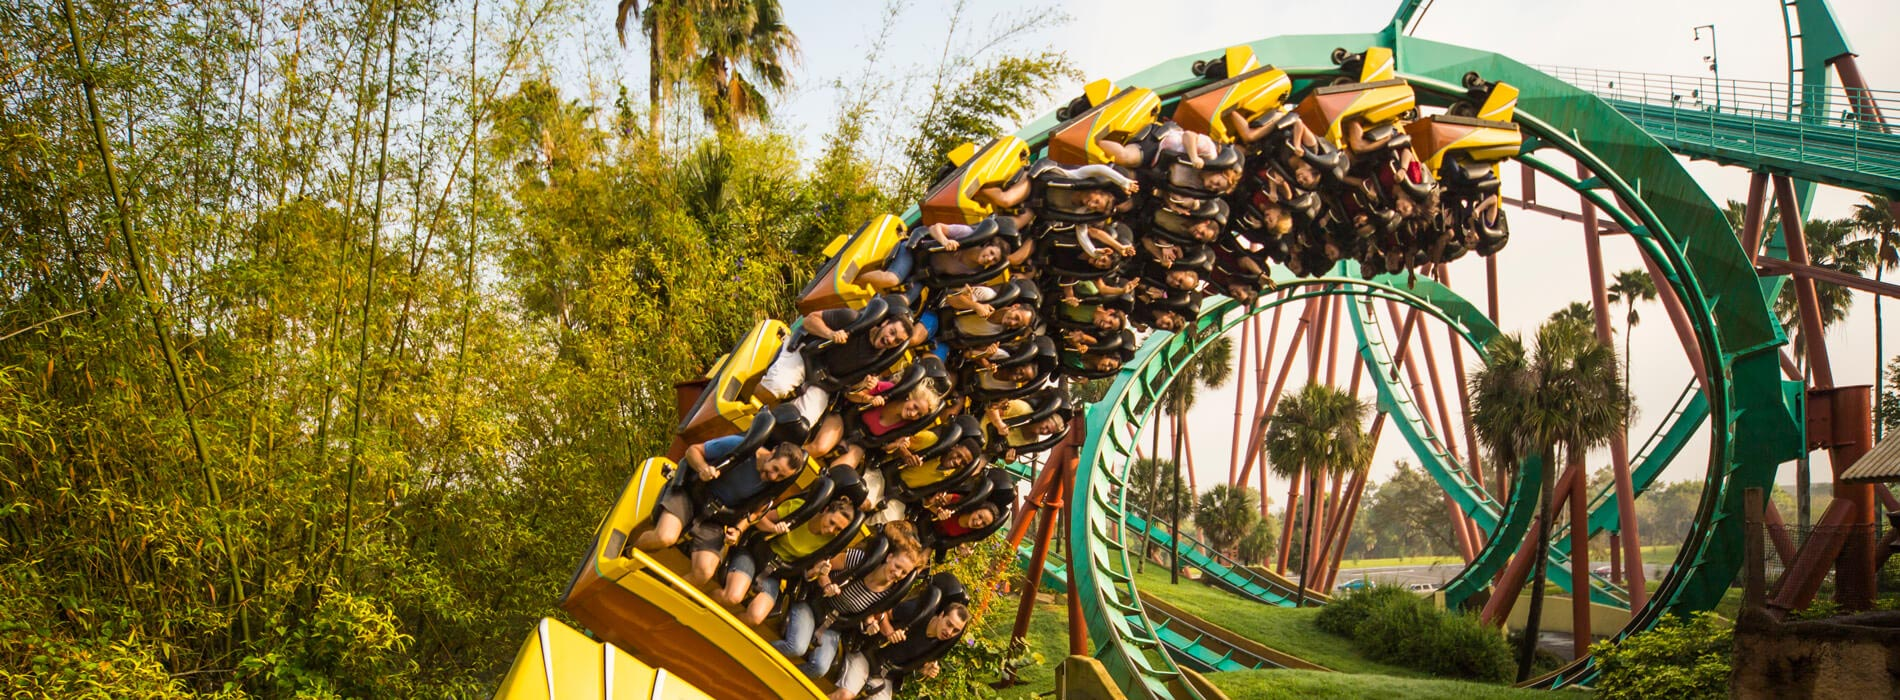 A group of people enjoy the thrill riding through multiple loops on a teal, red, and brown roller coaster called Kumba at Busch Gardens Tampa Bay, located in Florida.